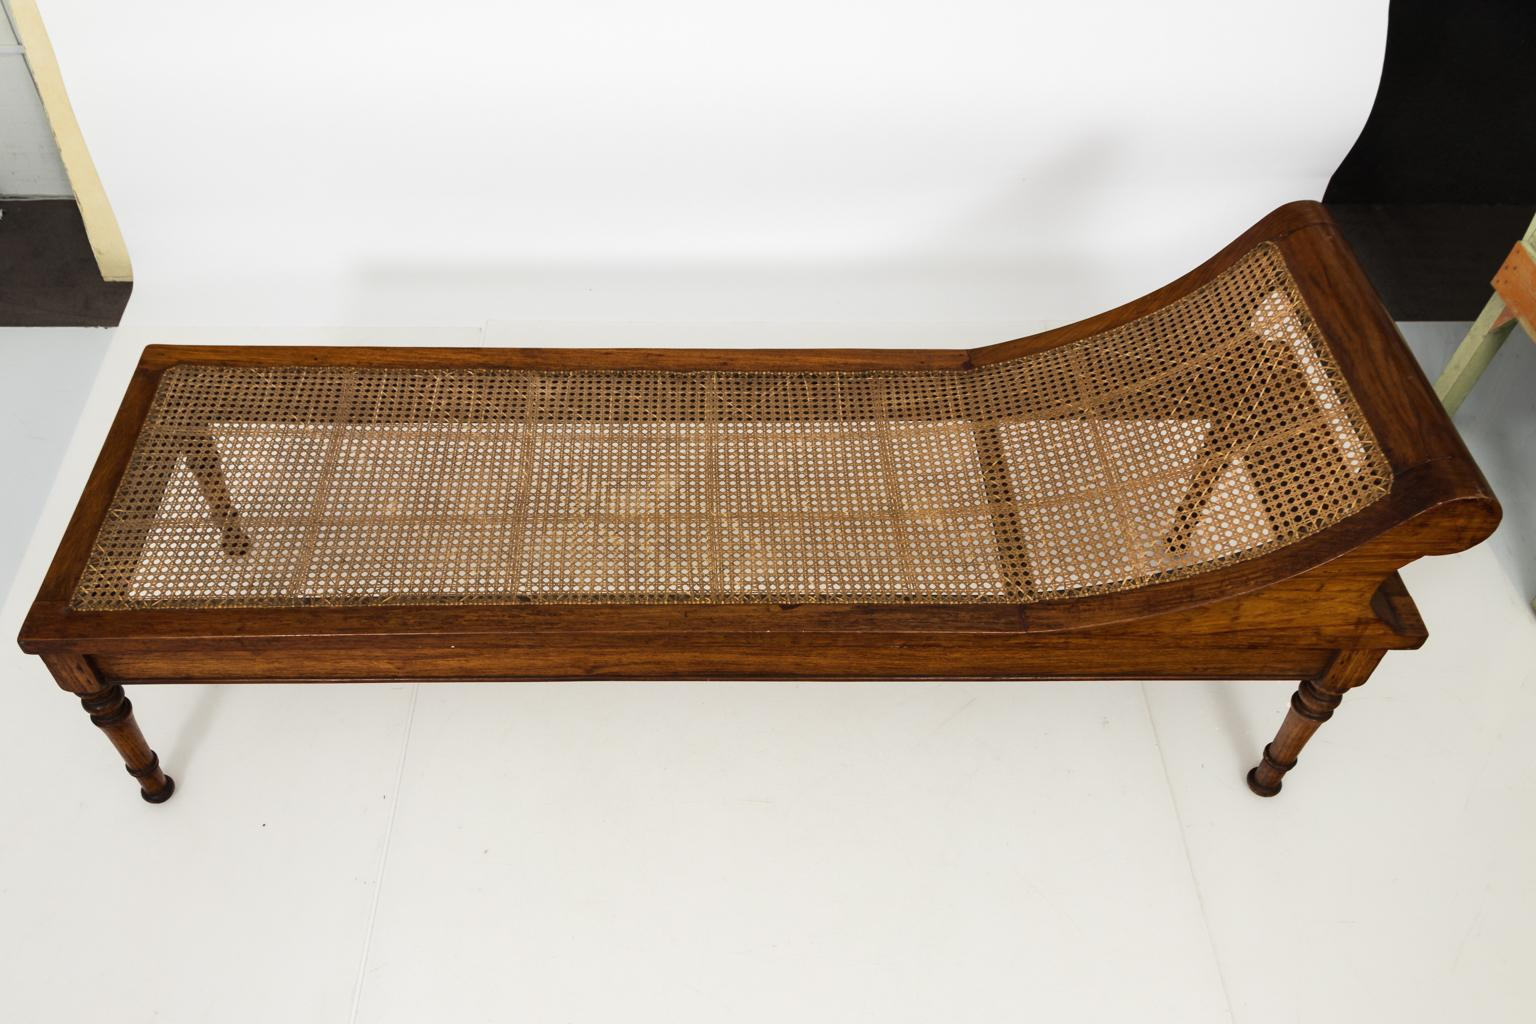 Recamiere Rattan 19th Century English Récamière With Caned Seating